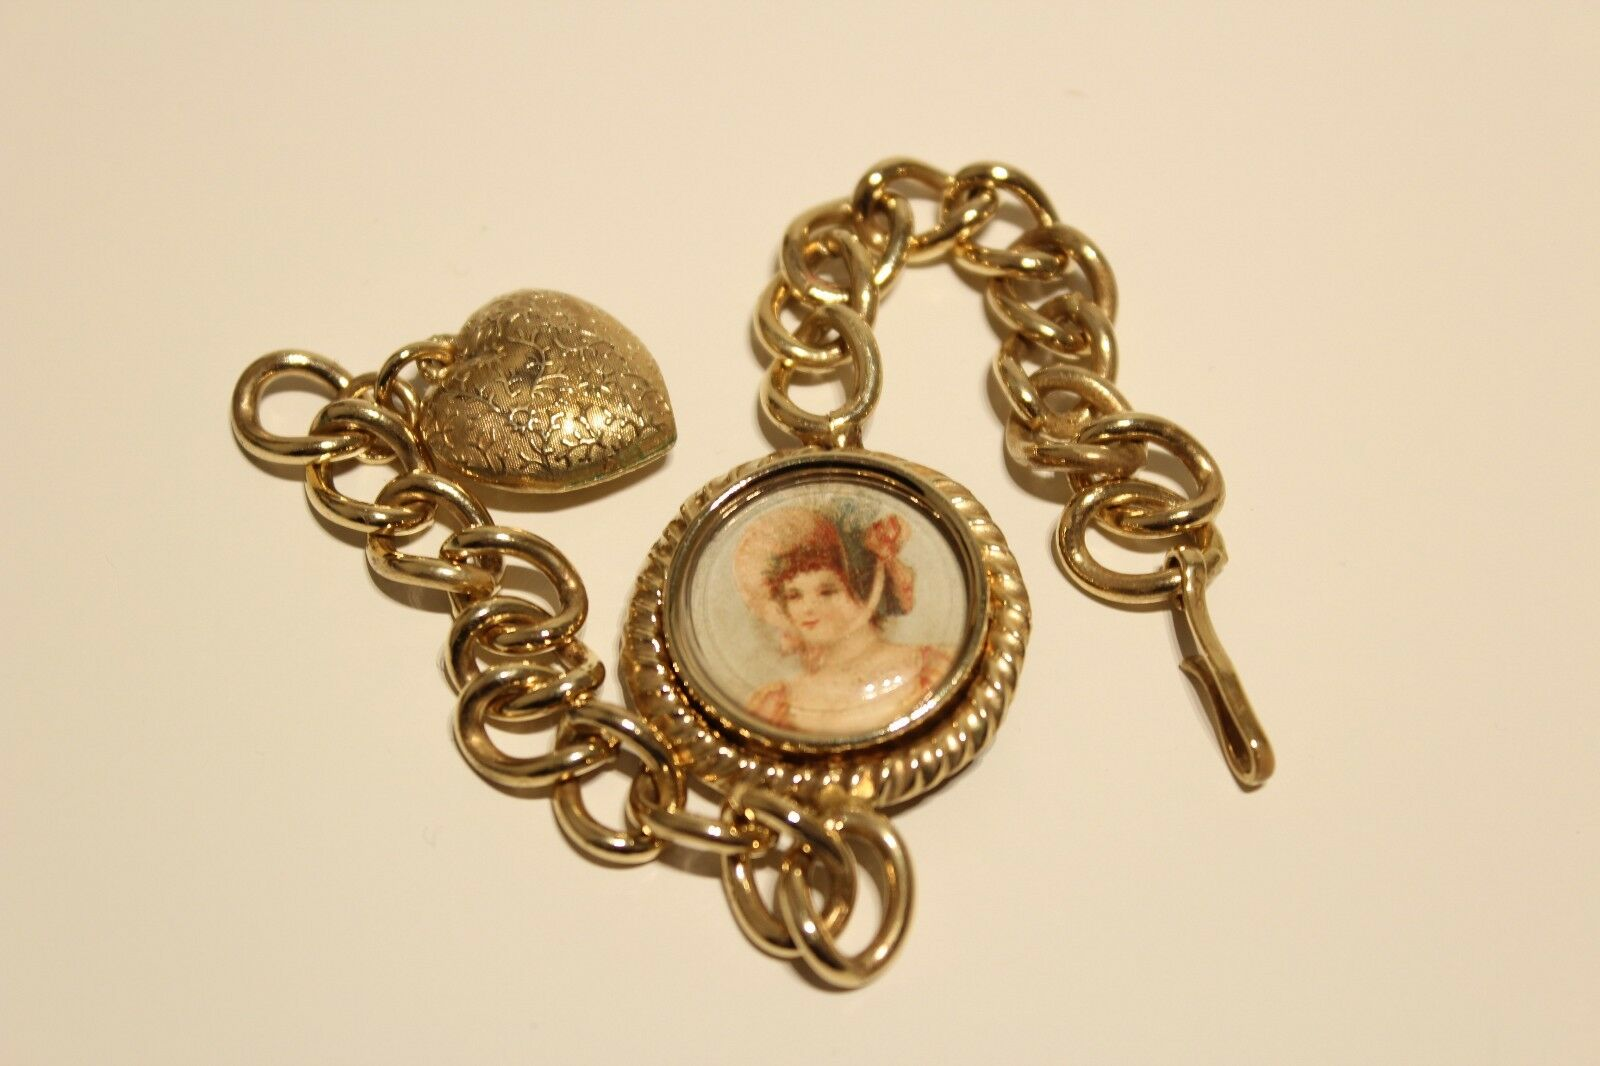 ART DECO RARE BEAUTIFUL LADIES BRASS BRACELET WITH HEART AND PLACE FOR PHOTO